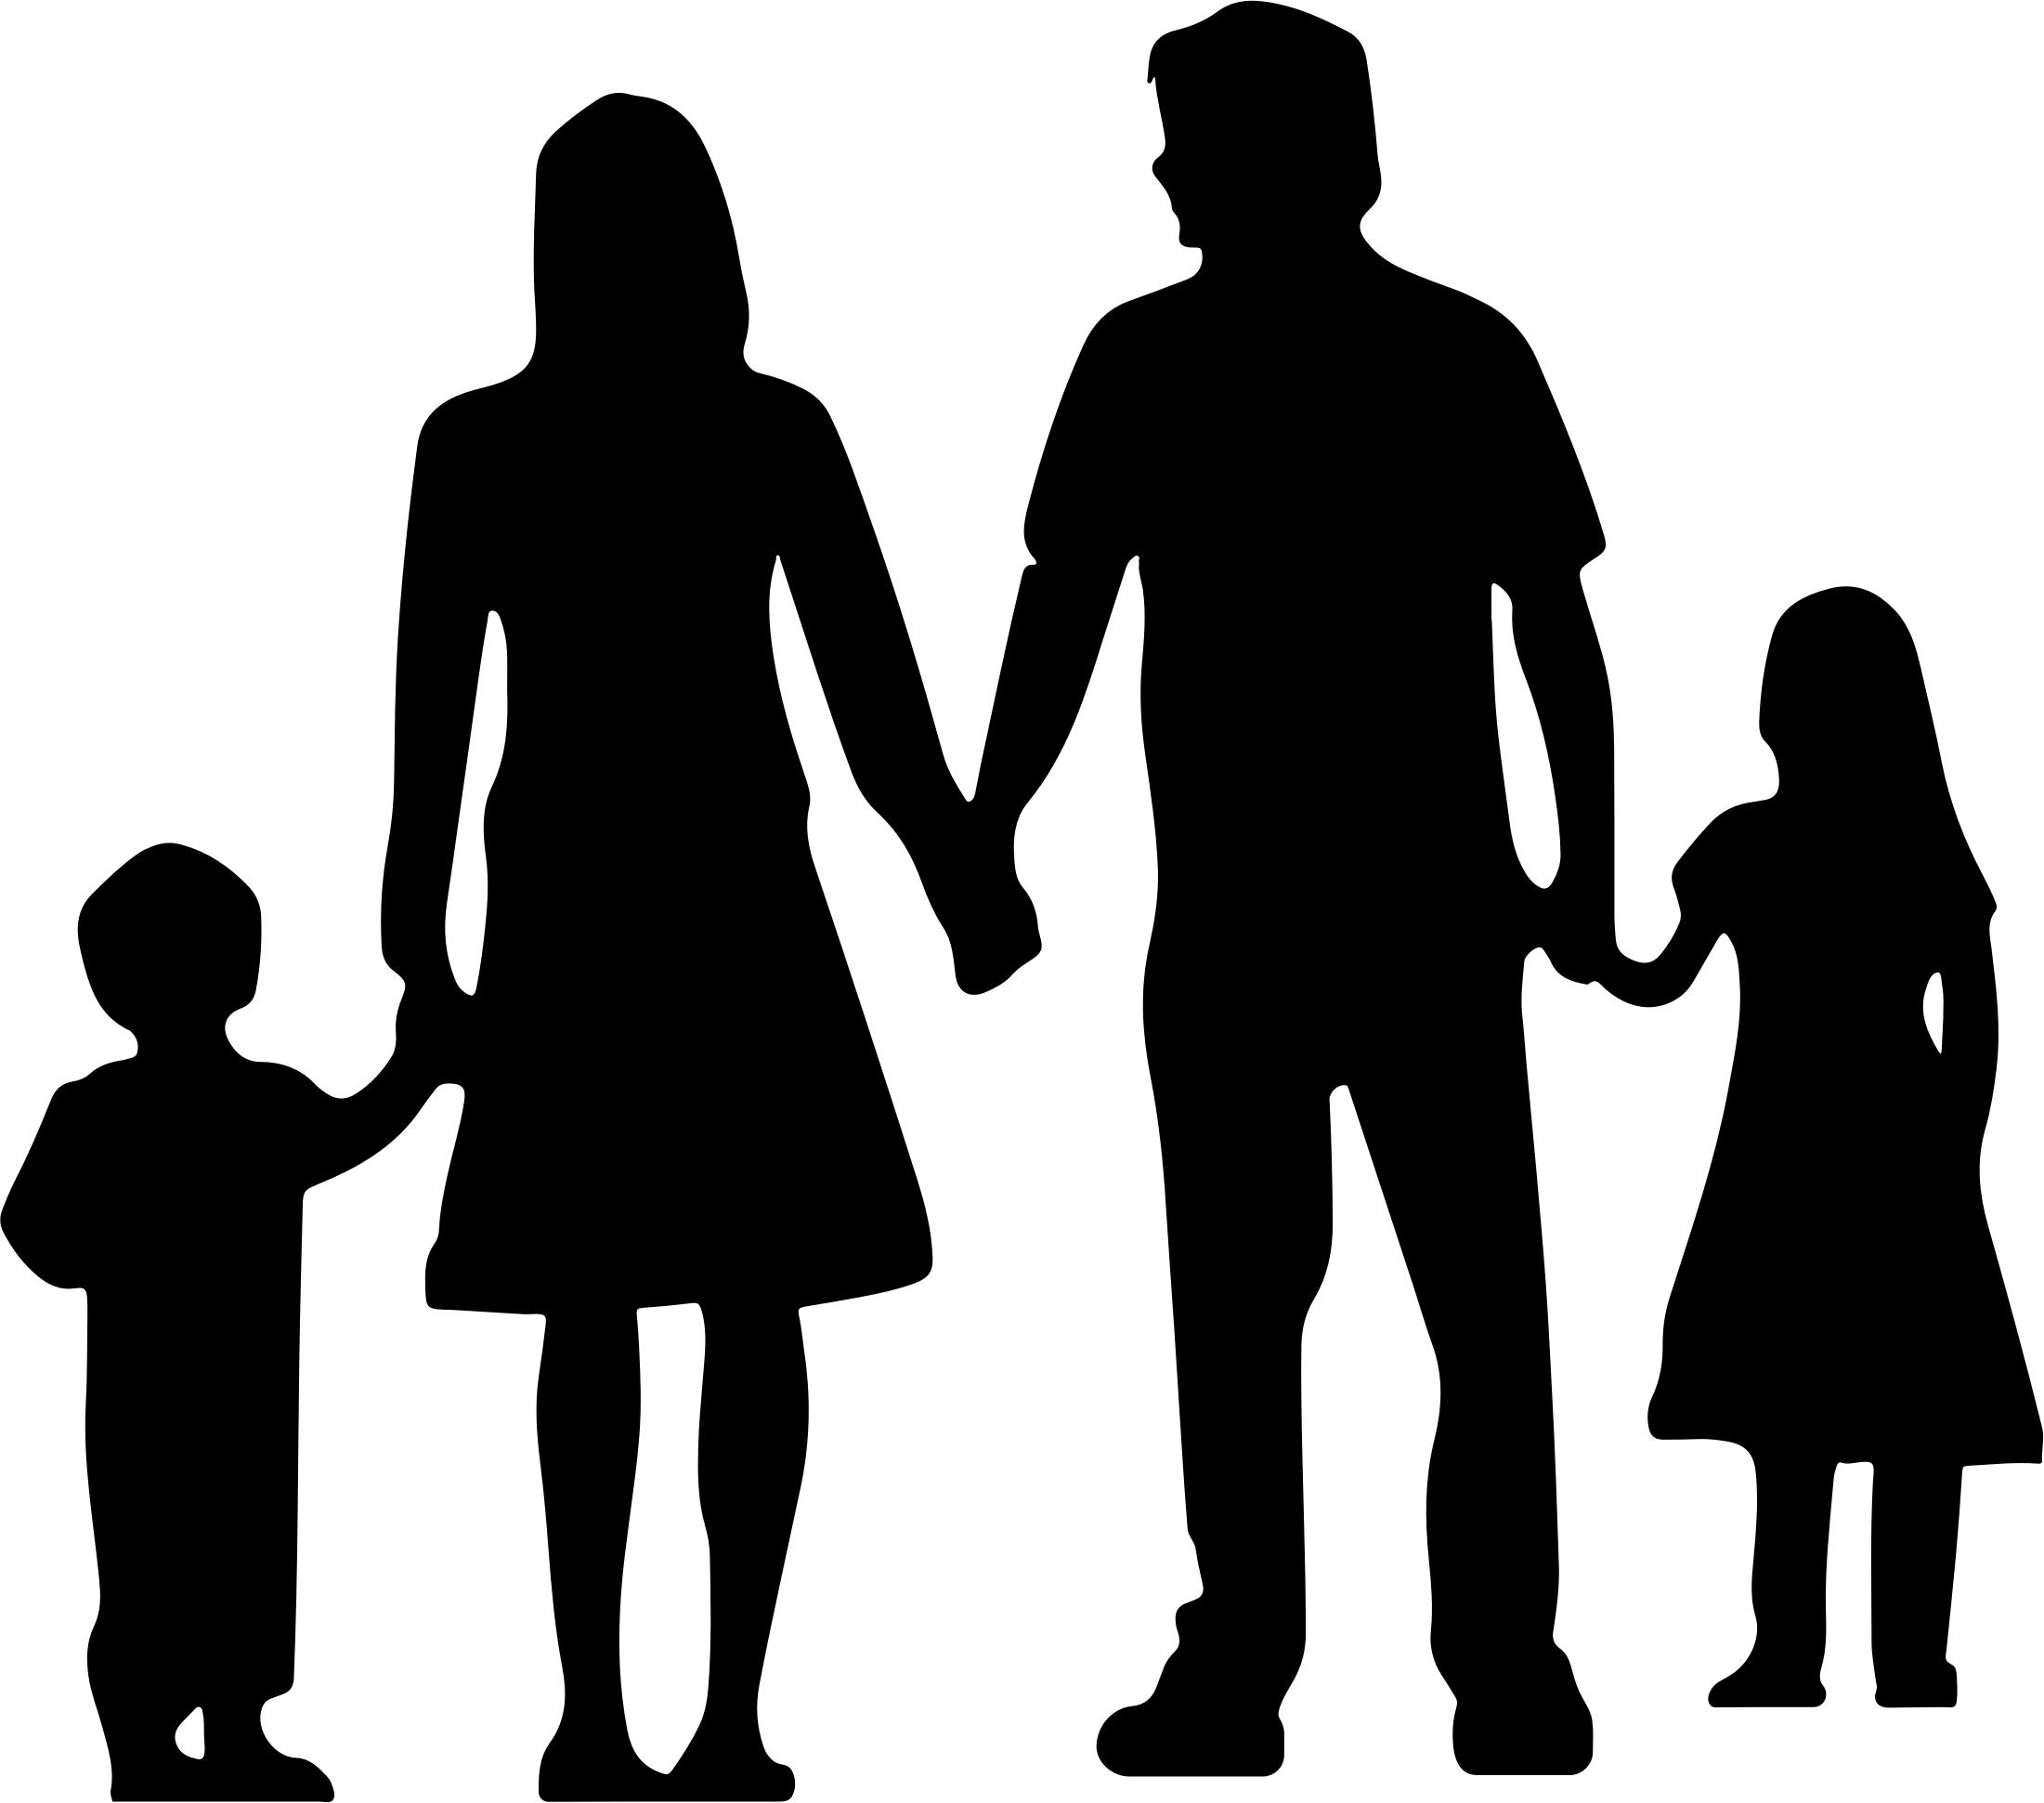 2201x1941 Nuclear Family Silhouette Without Ground Icons Png